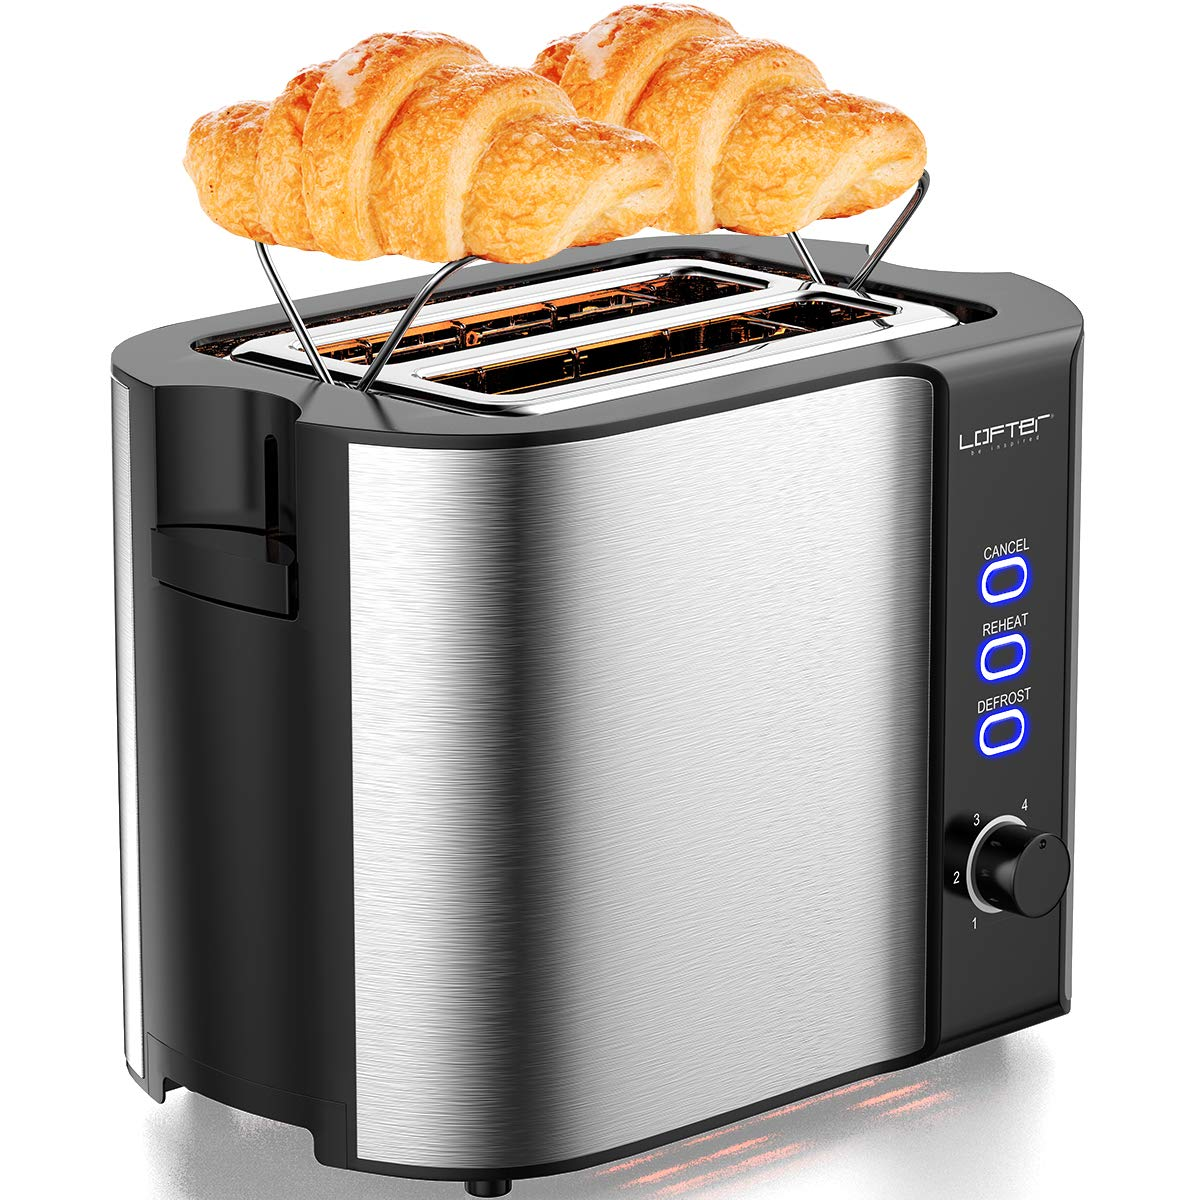 2 Slice Toaster, LOFTER Stainless Steel Bread Toasters Best Rated Prime with Warming Rack, Extra Wide Slots Small Toaster, 6 Bread Shade Settings, Defrost/Reheat/Cancel Function, Removable Crumb Tray, 800W, Silver by LOFTer